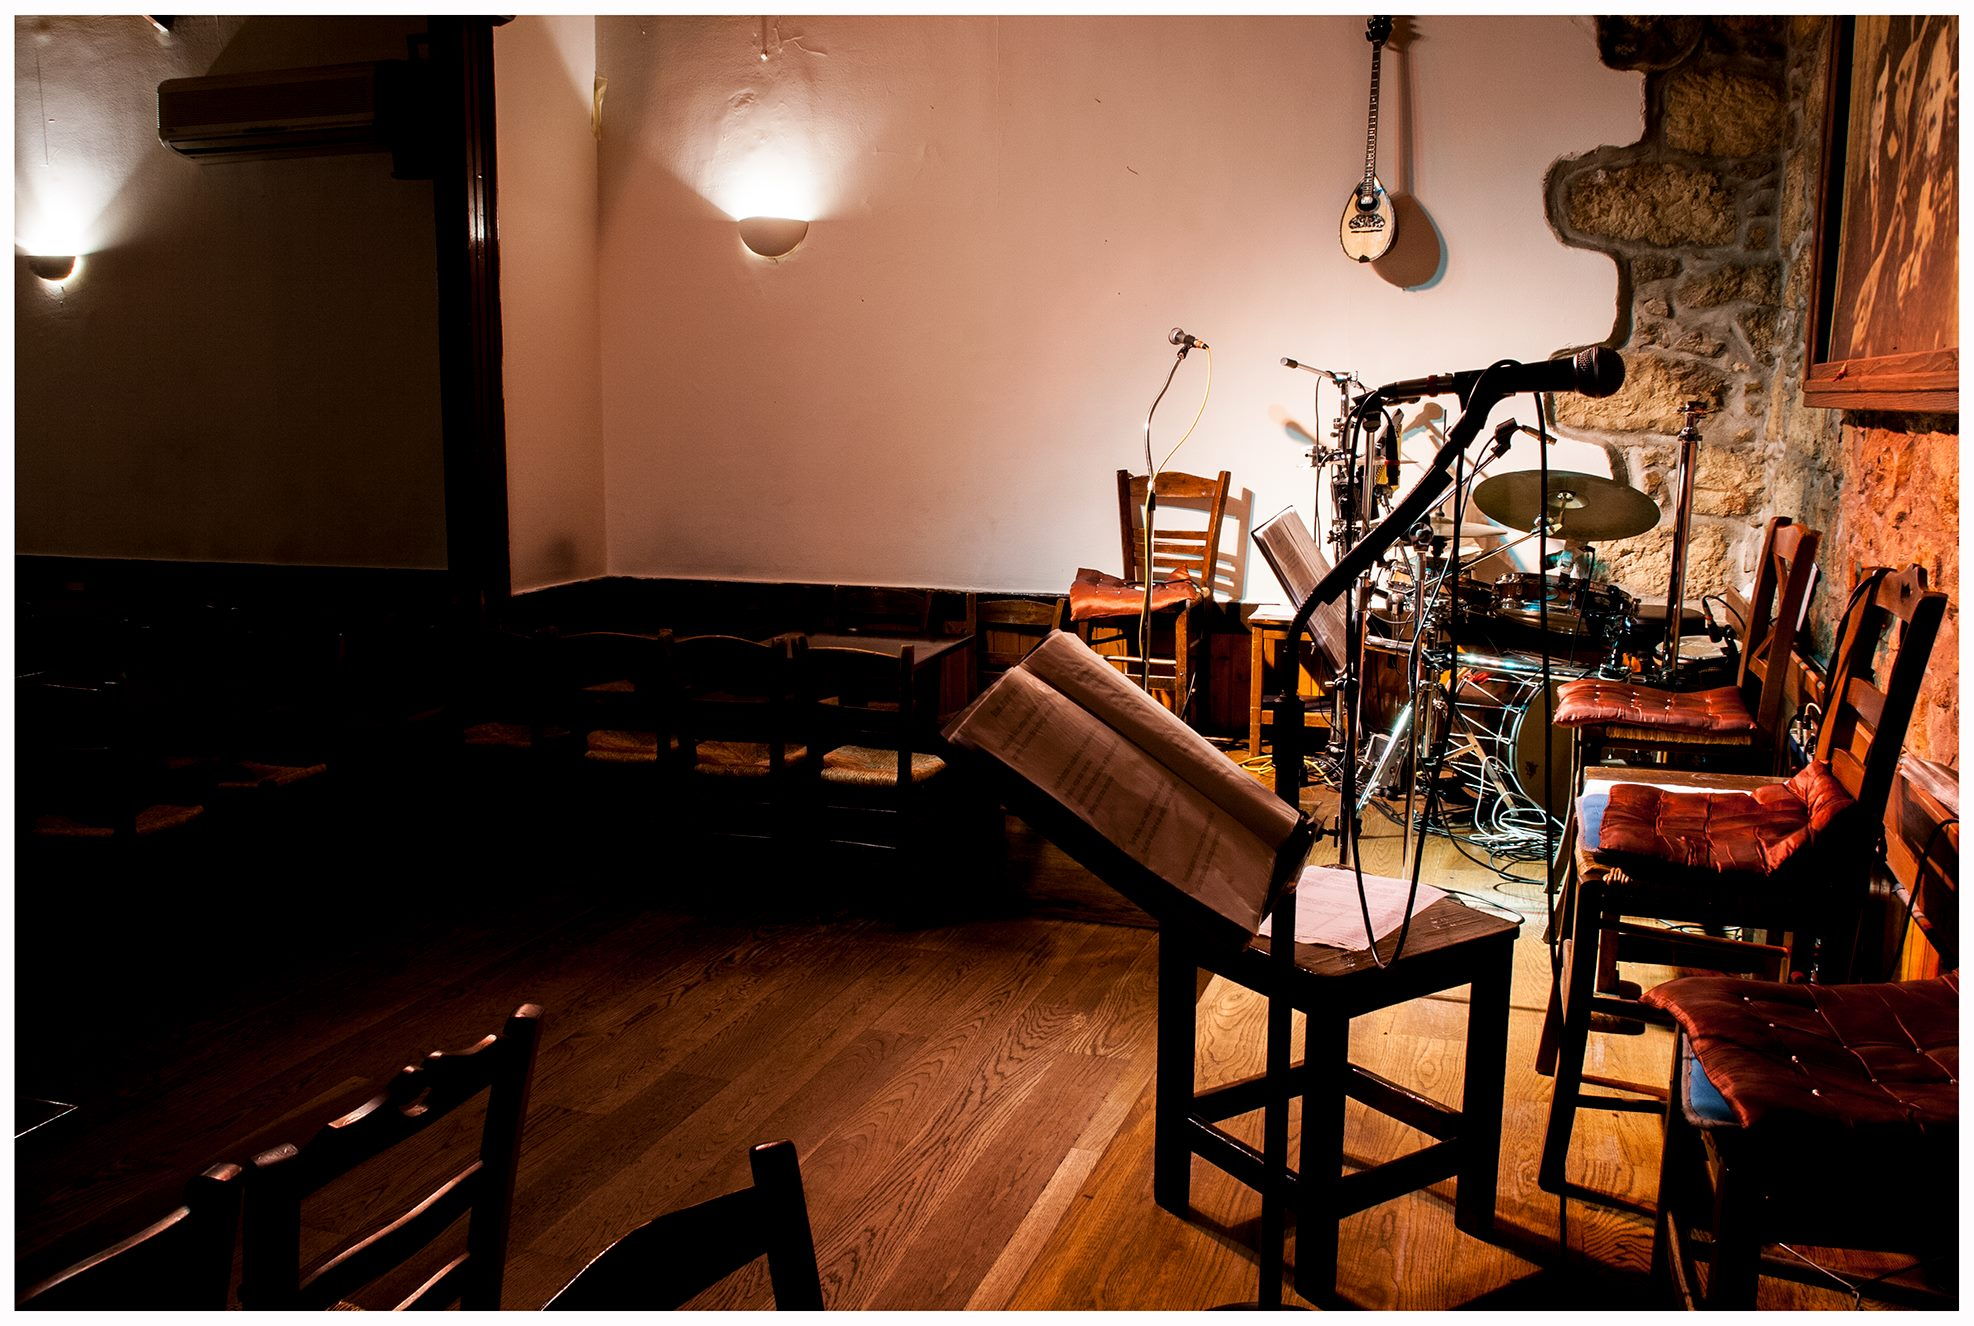 Kavouras in Exarcheia is the place to go if you want to enjoy the original rebetiko music. Photo source: Kavouras